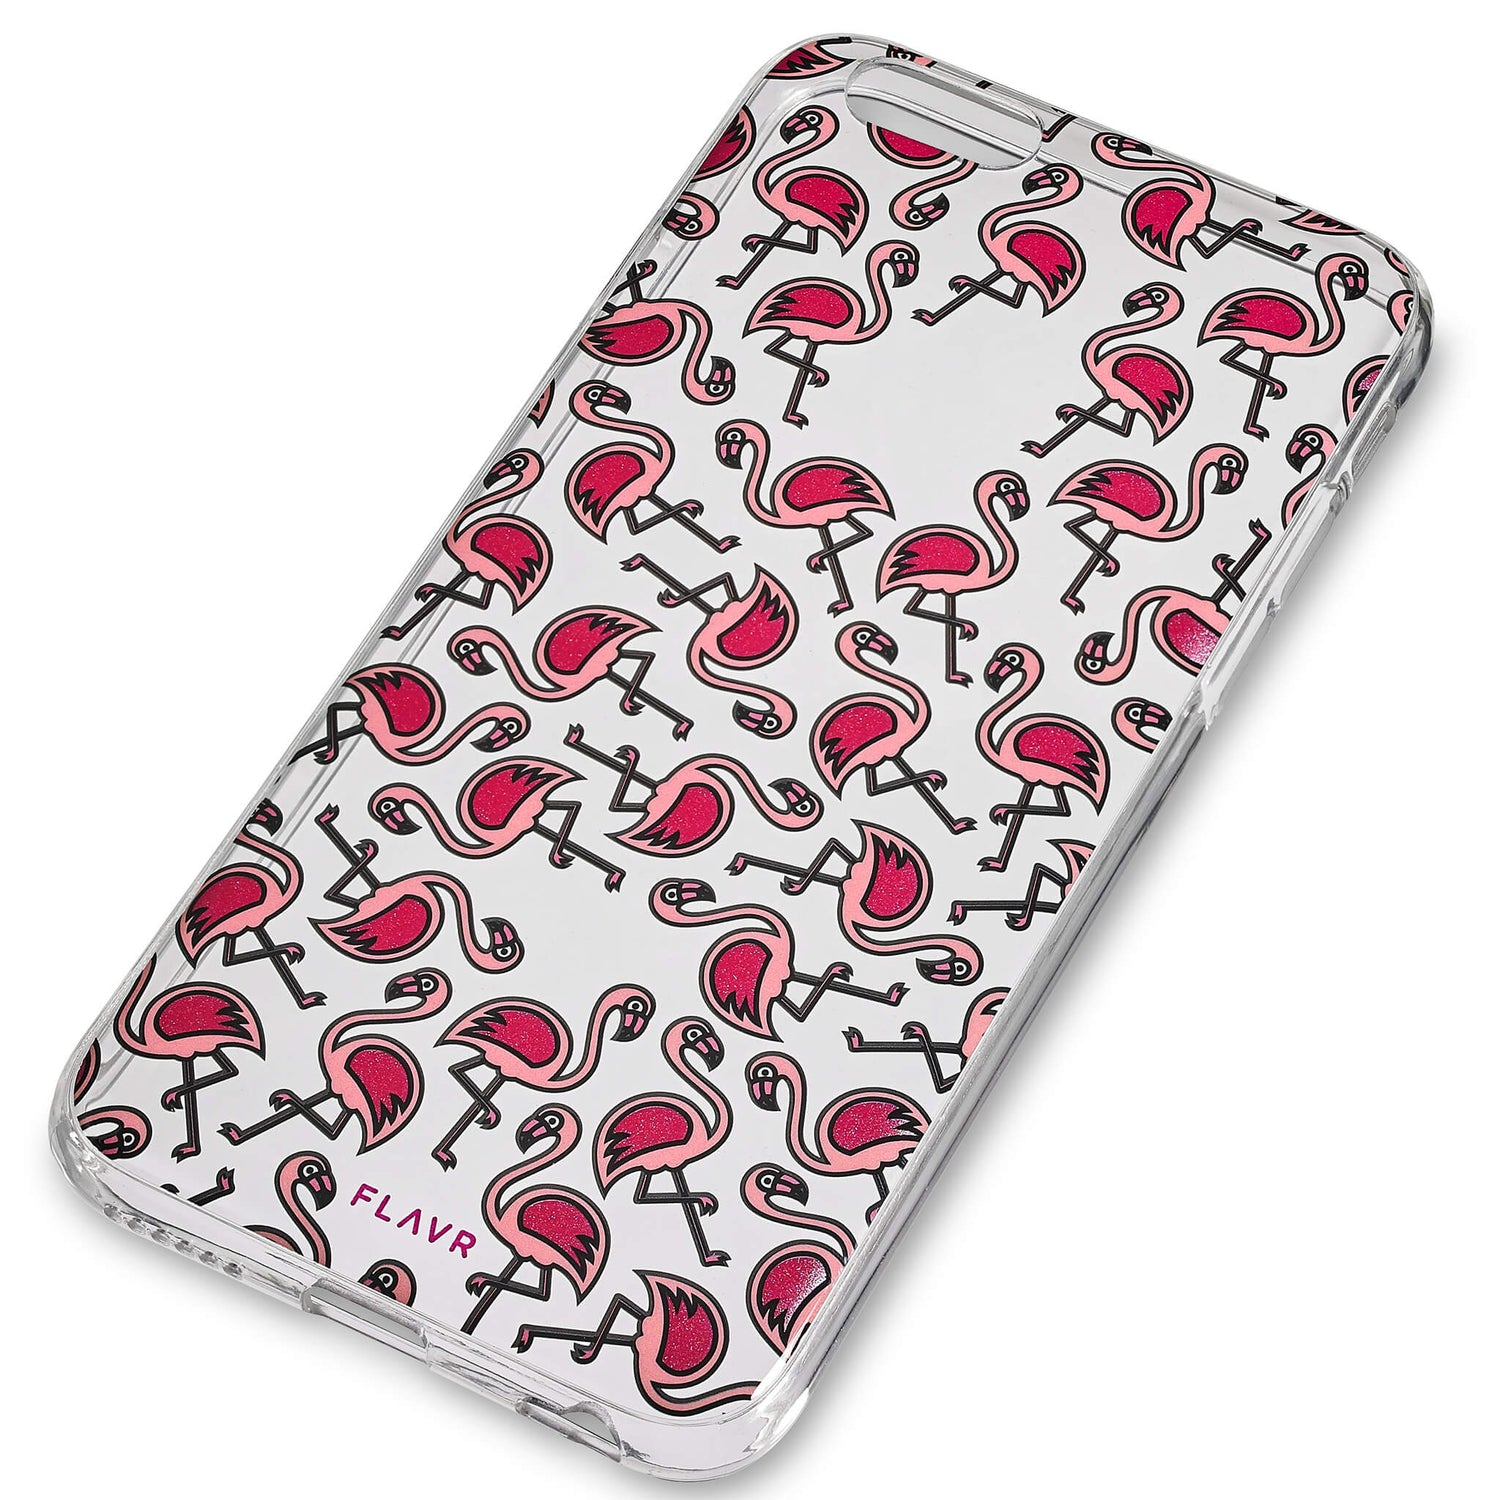 flavr iphone 6 case